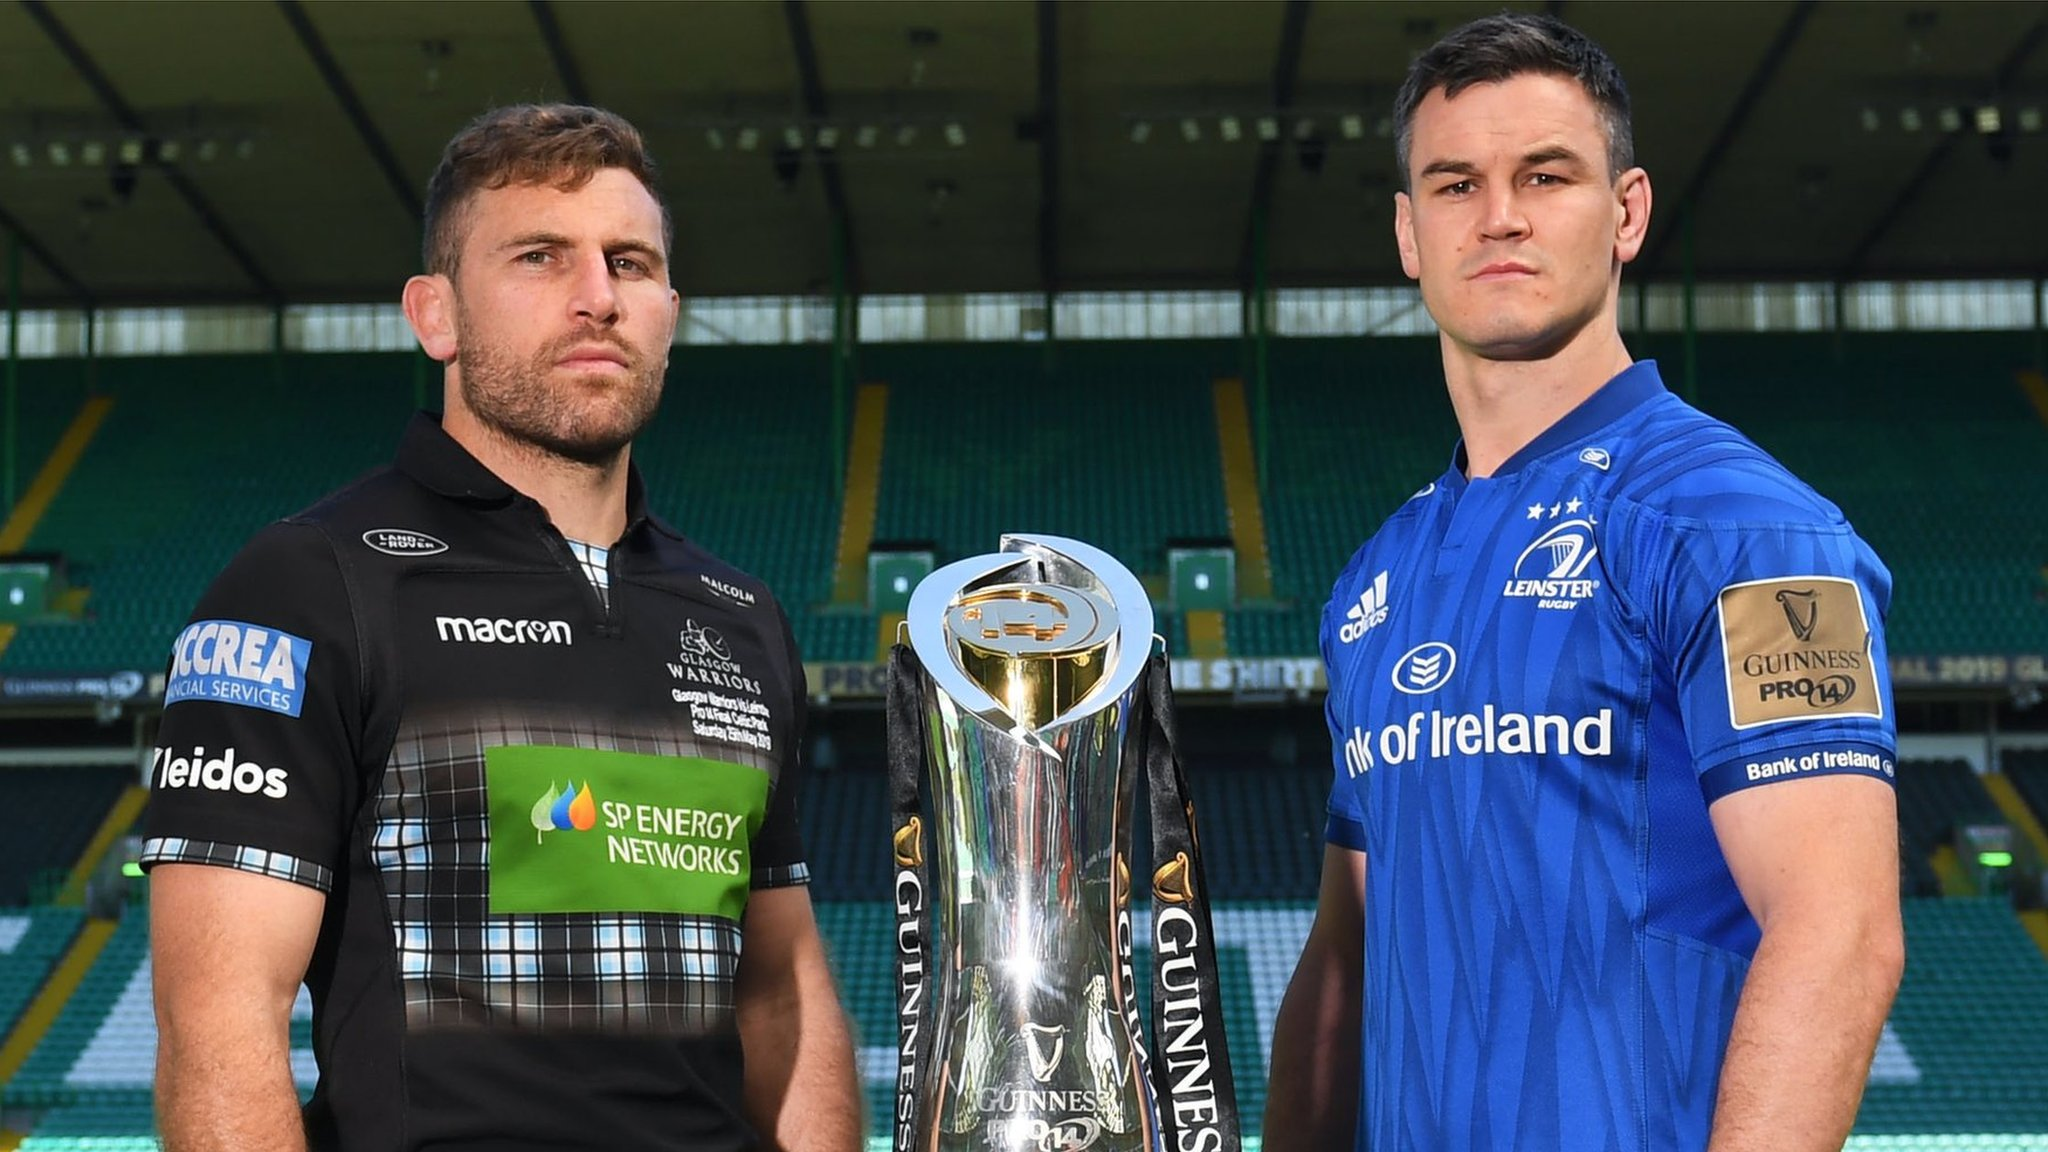 Pro14 final: Glasgow Warriors v Leinster - team news & preview